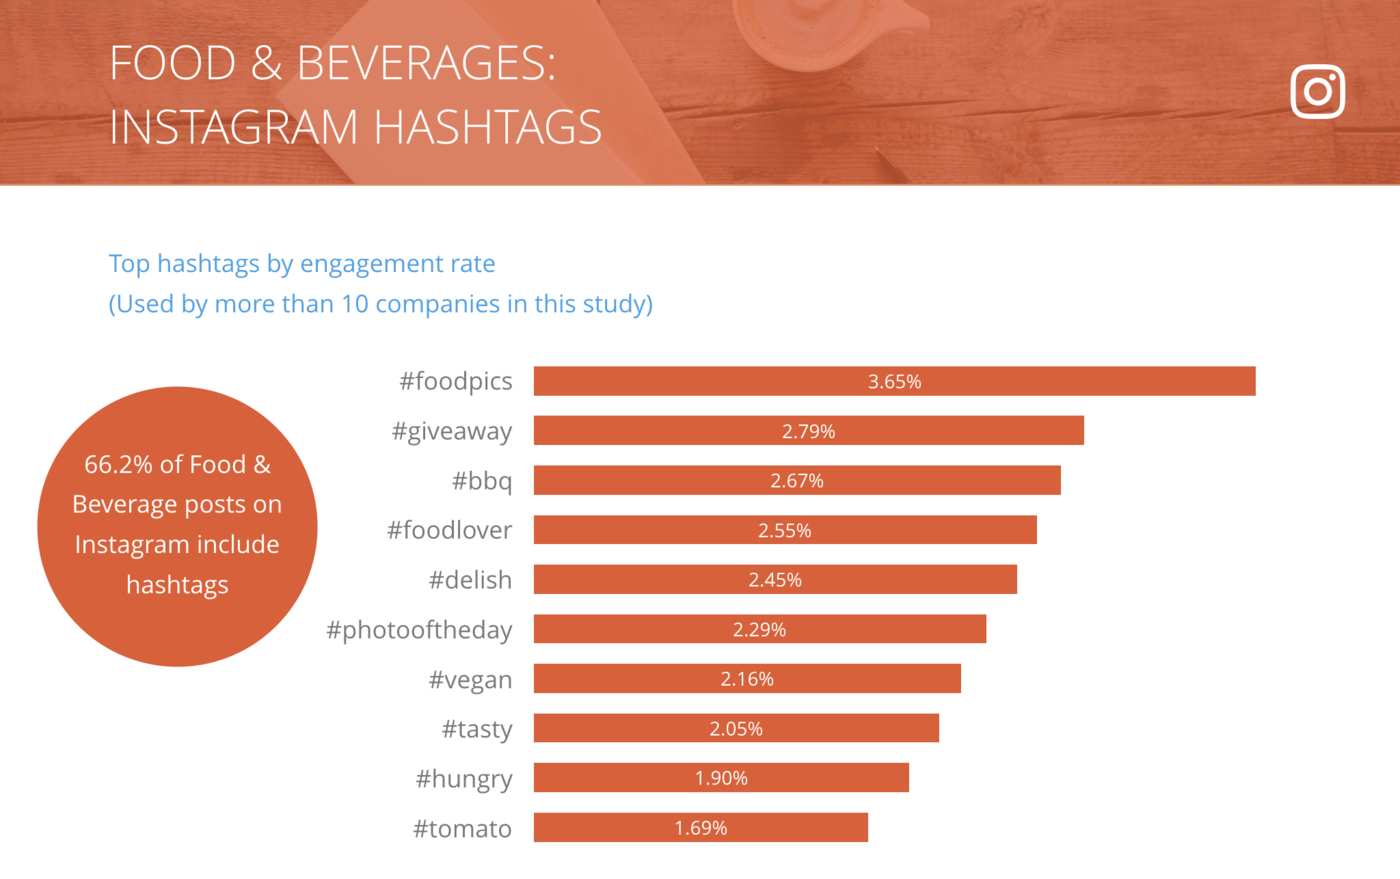 slide of Instagram Top Hashtags by Engagement Rate per Post, Food & Beverages